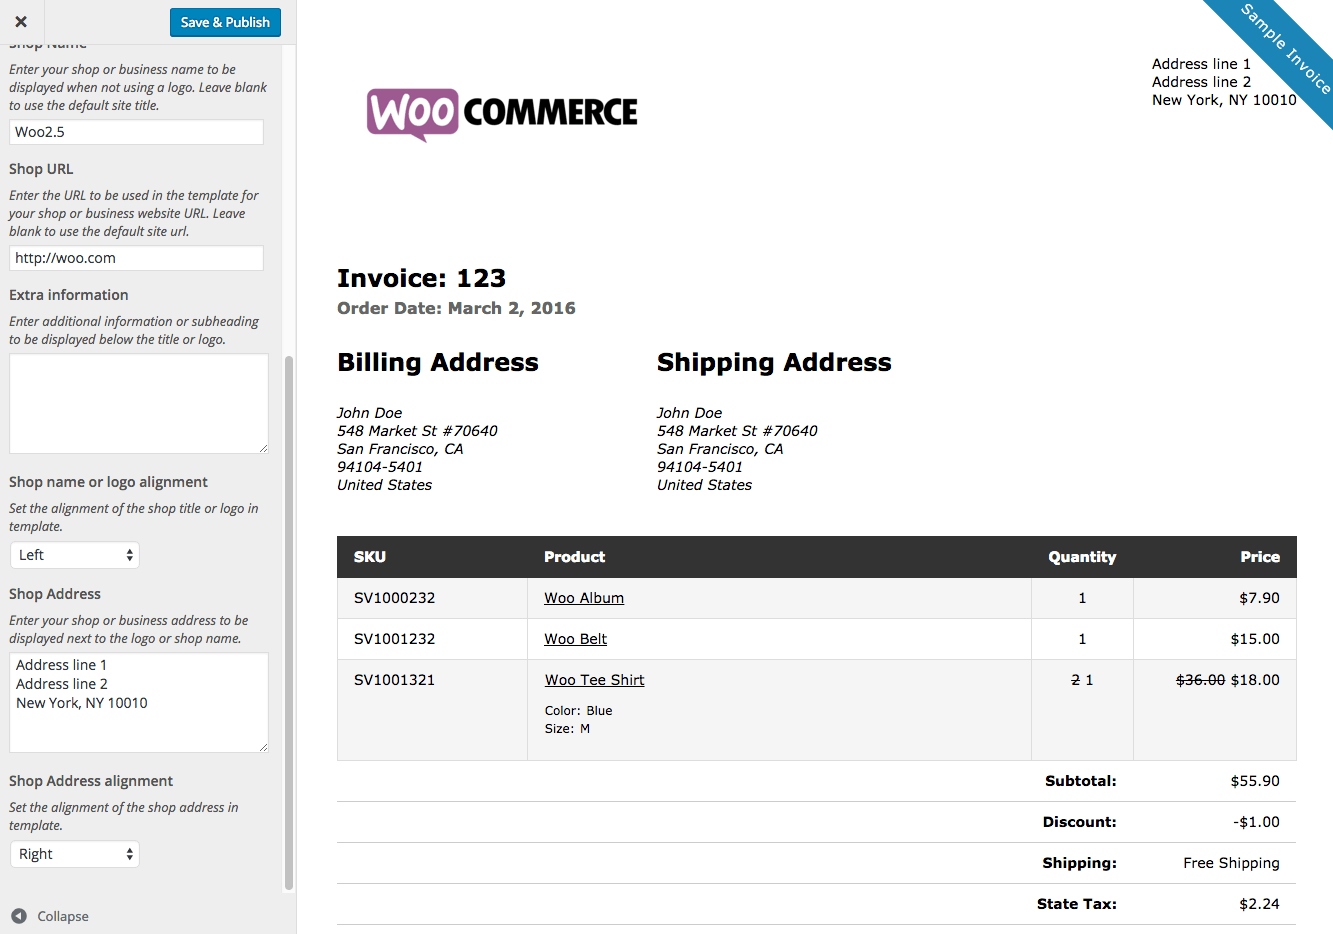 Hucareus  Ravishing Woocommerce Print Invoices Amp Packing Lists  Woocommerce Docs With Great Woocommerce Print Invoices  Packing Lists Customizer With Awesome Build A Bear Receipt Codes Also Receipt Of Car Sale In Addition Banana Cake Receipt And Receipt Ocr App As Well As Goods Receipt Form Additionally Receipt Creator Software From Docswoocommercecom With Hucareus  Great Woocommerce Print Invoices Amp Packing Lists  Woocommerce Docs With Awesome Woocommerce Print Invoices  Packing Lists Customizer And Ravishing Build A Bear Receipt Codes Also Receipt Of Car Sale In Addition Banana Cake Receipt From Docswoocommercecom